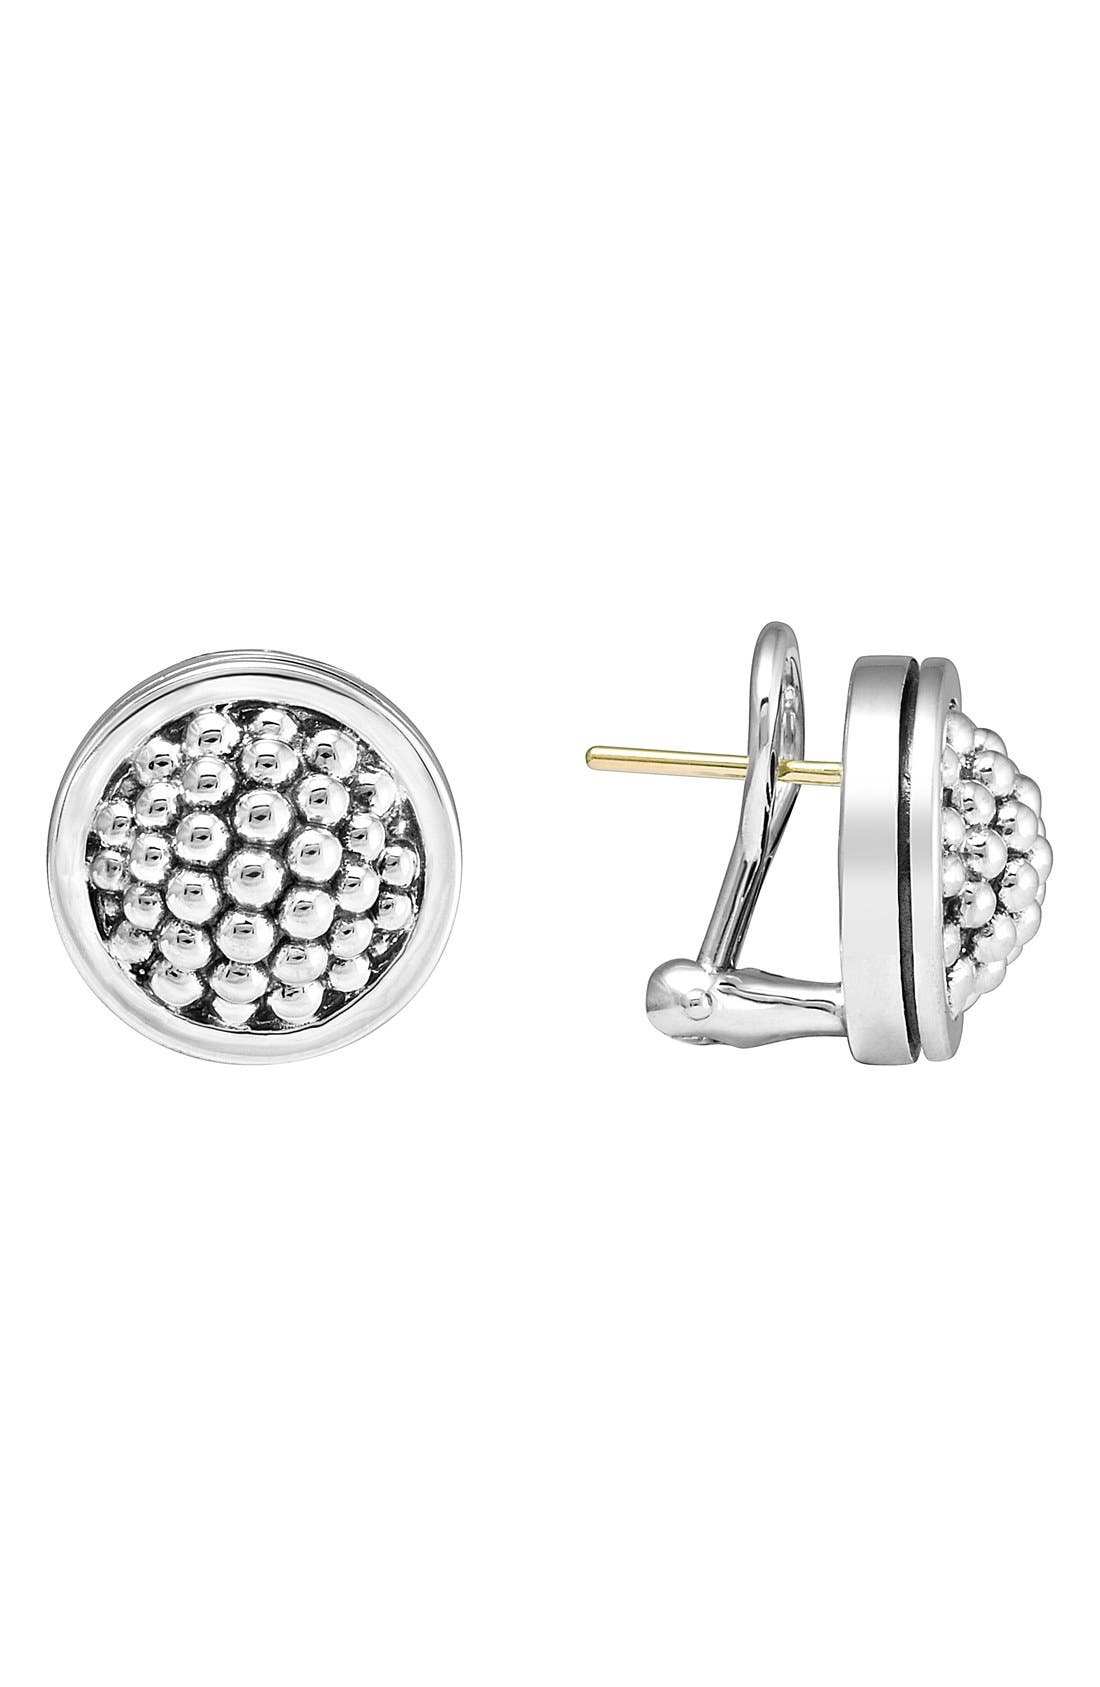 Caviar Stud Earrings,                         Main,                         color, Sterling Silver